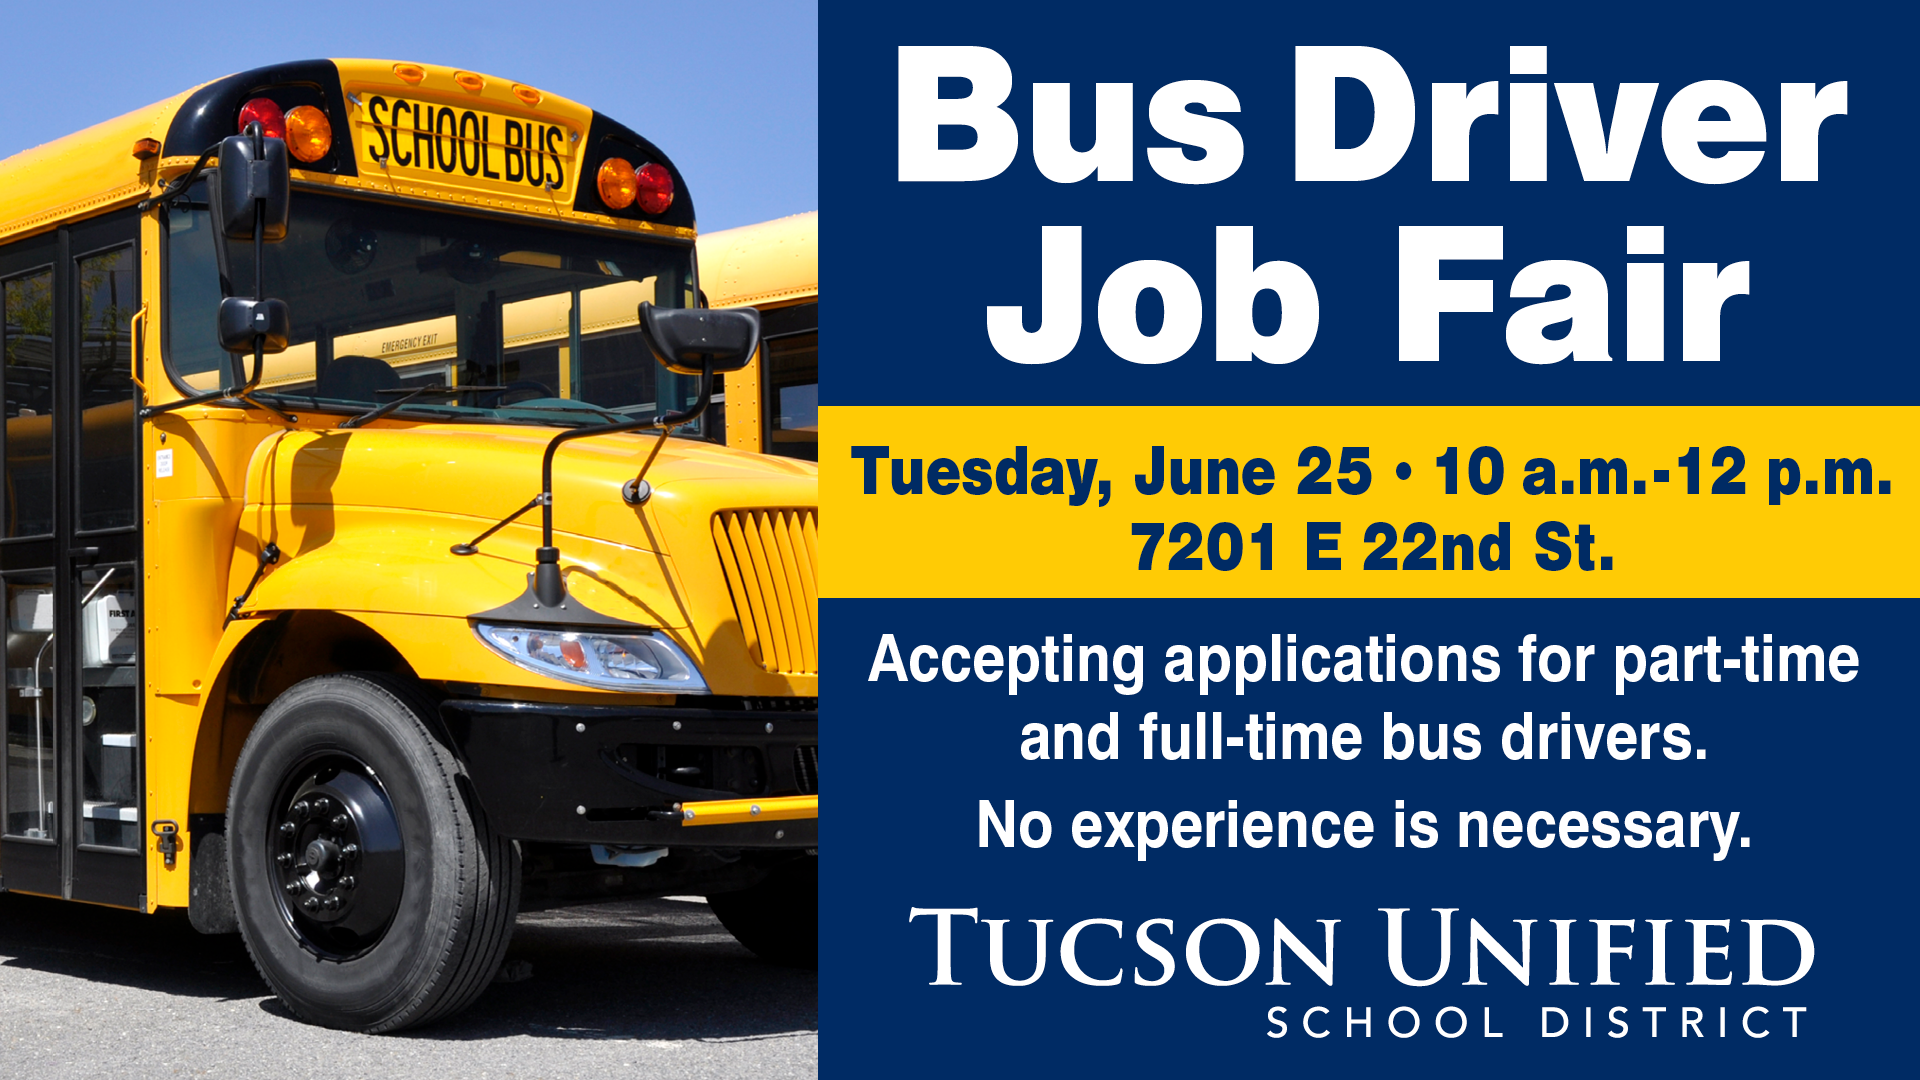 Infographic About Tucson Unified School District's Bus Driver Job Fair. Photo Courtesy Tucson Unified School District